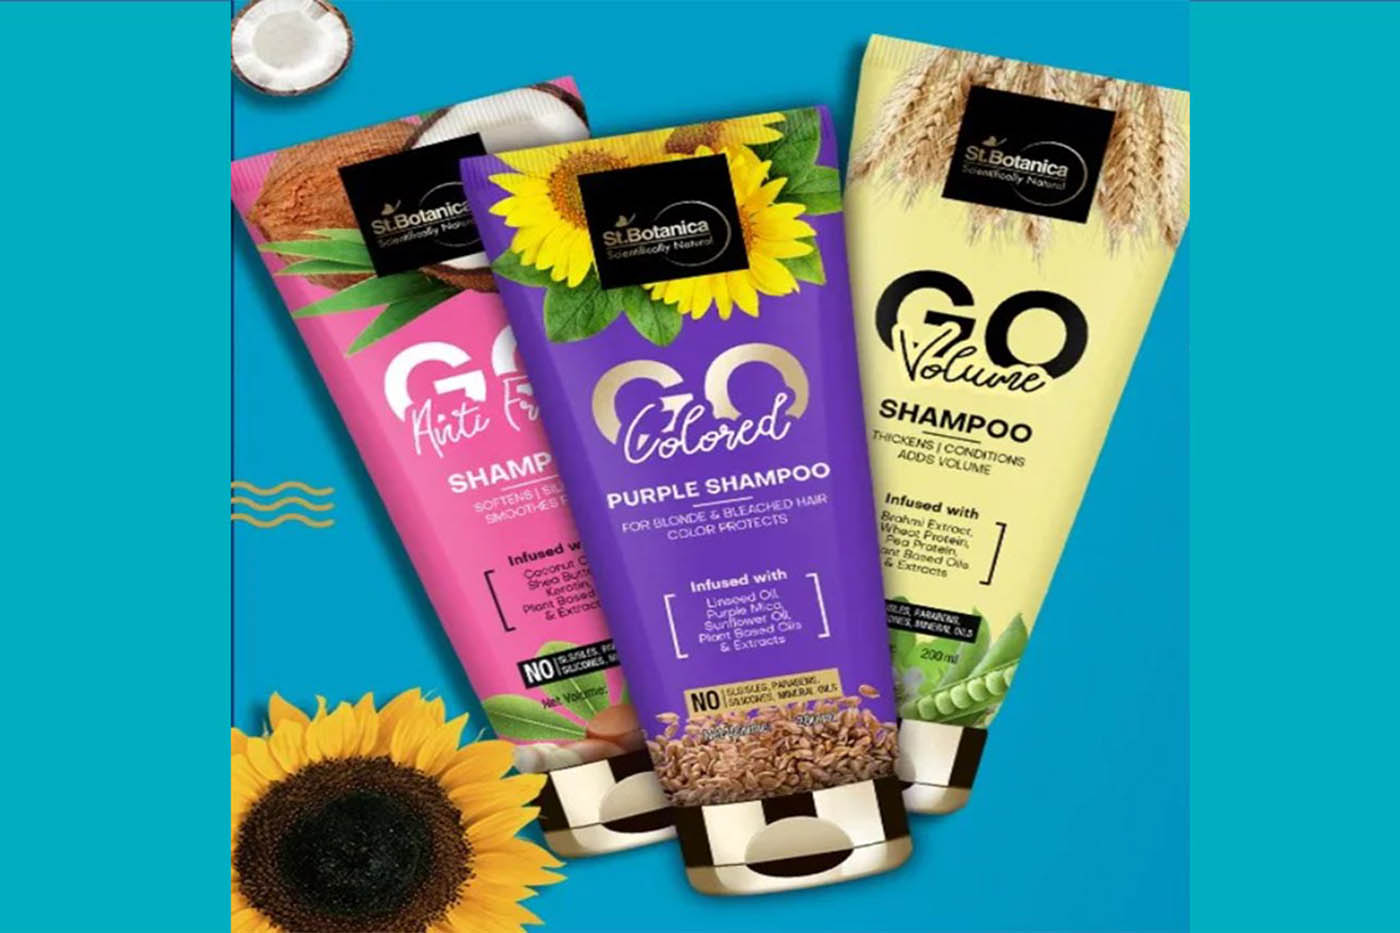 St. Botanica launches premium 'GO range' for hair care